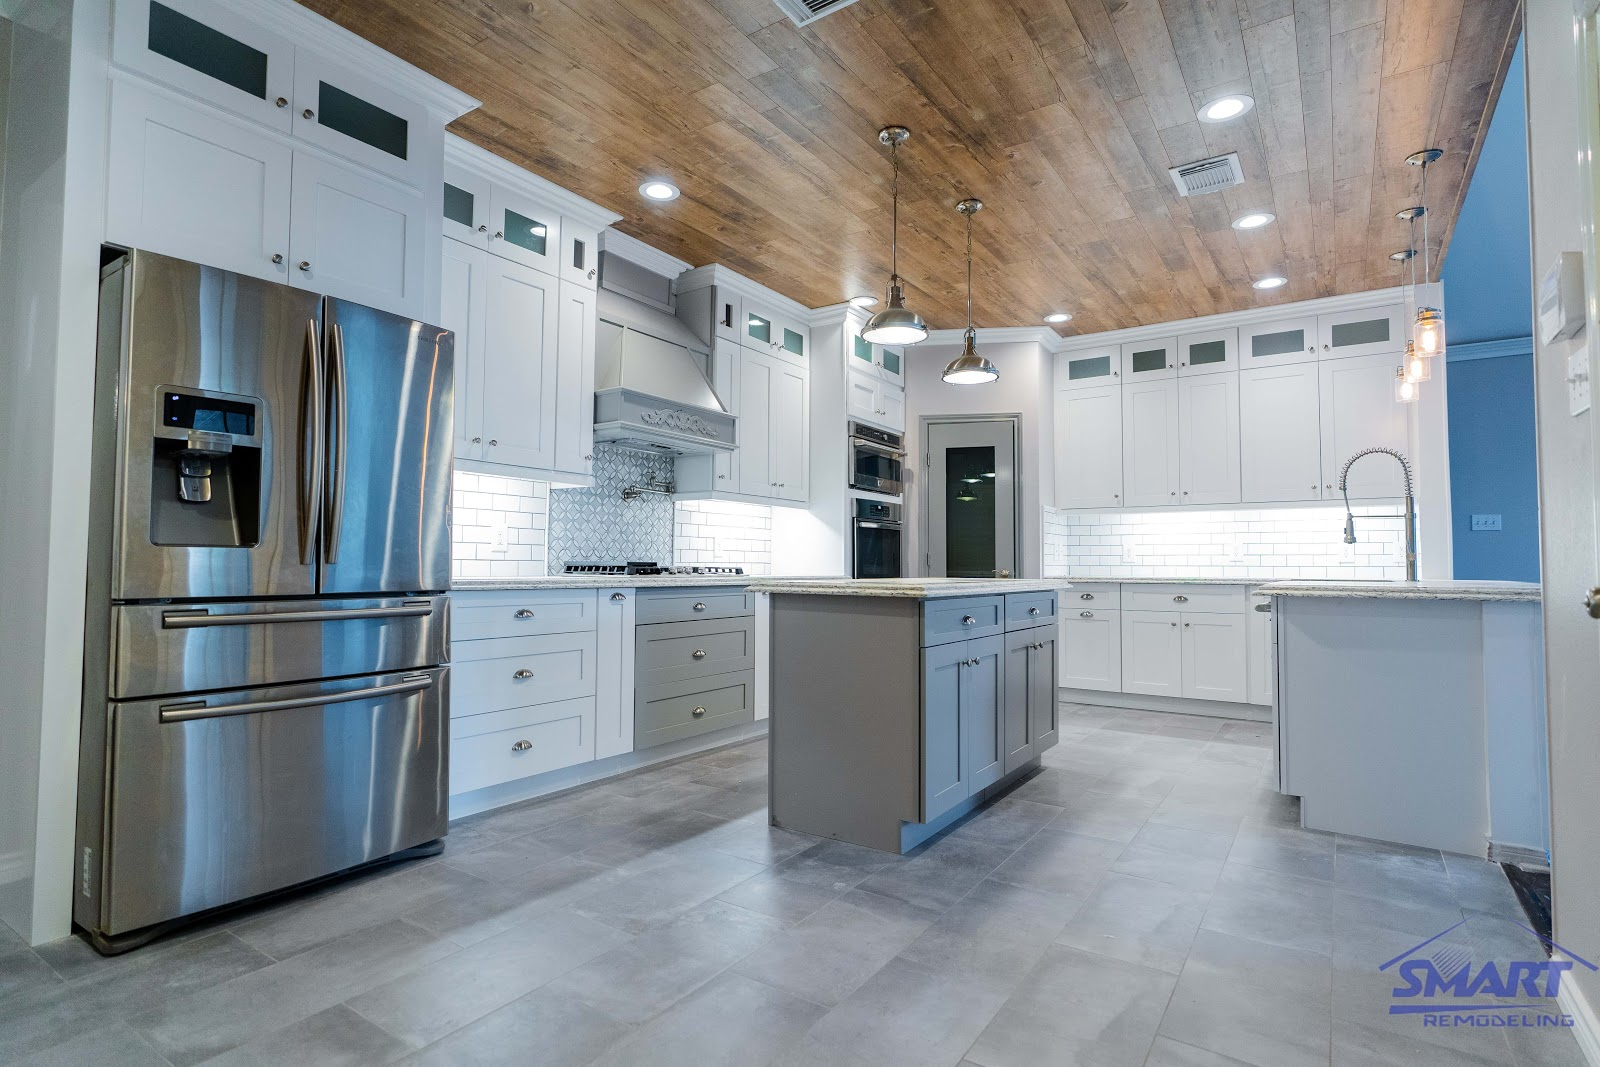 kitchen remodeling costs can vary based on kitchen size, detail,